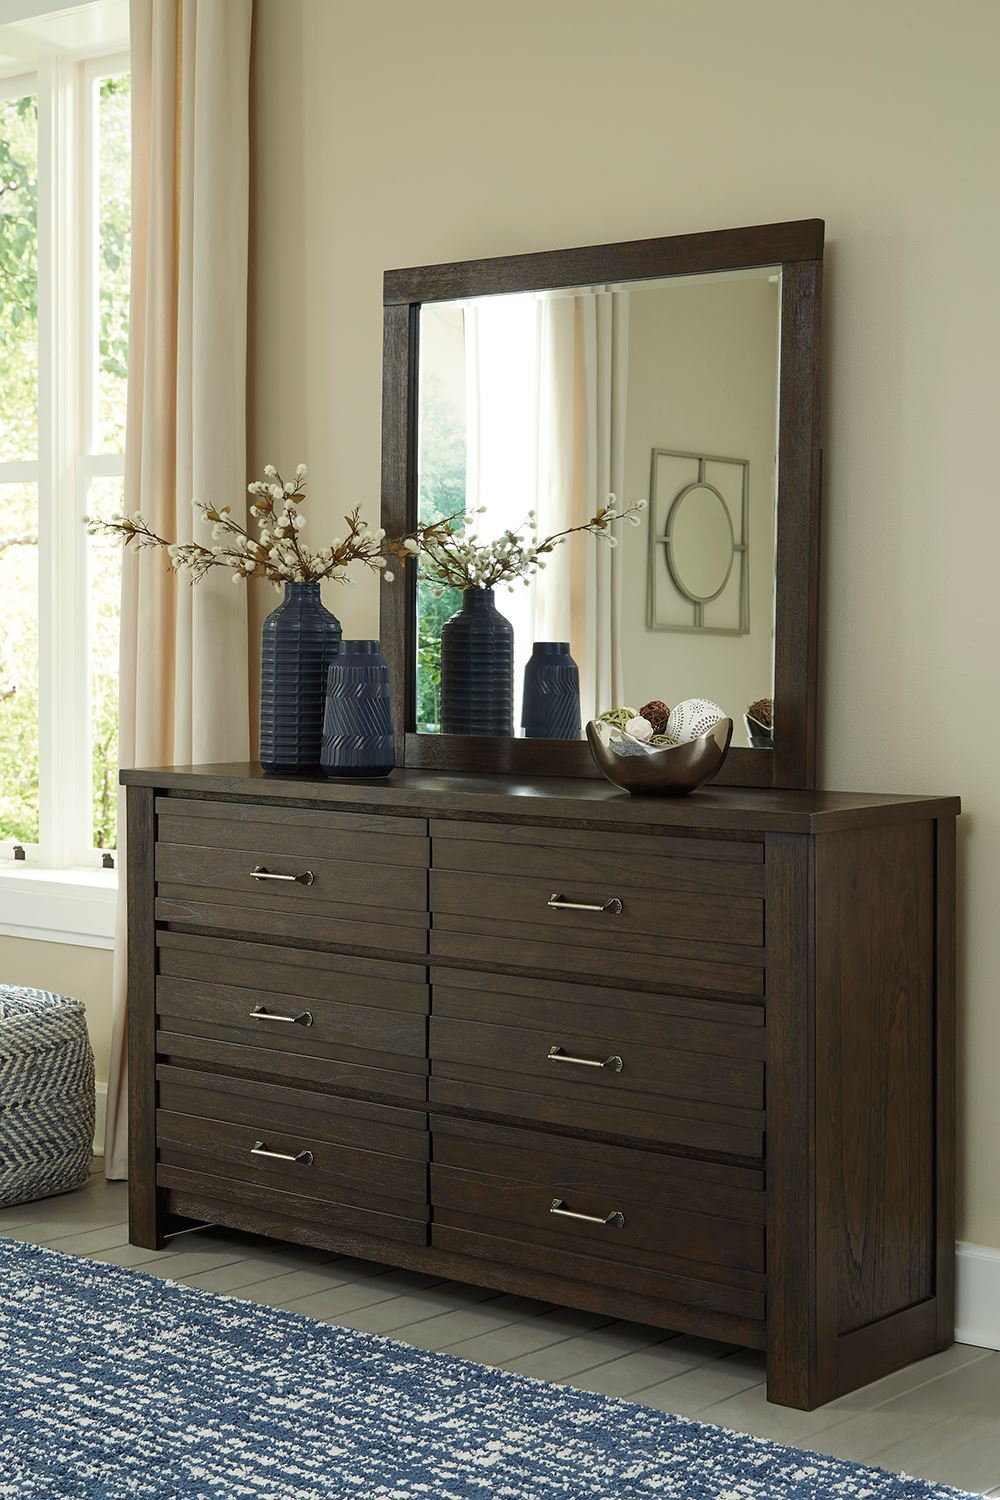 Picture of Darbry Dresser